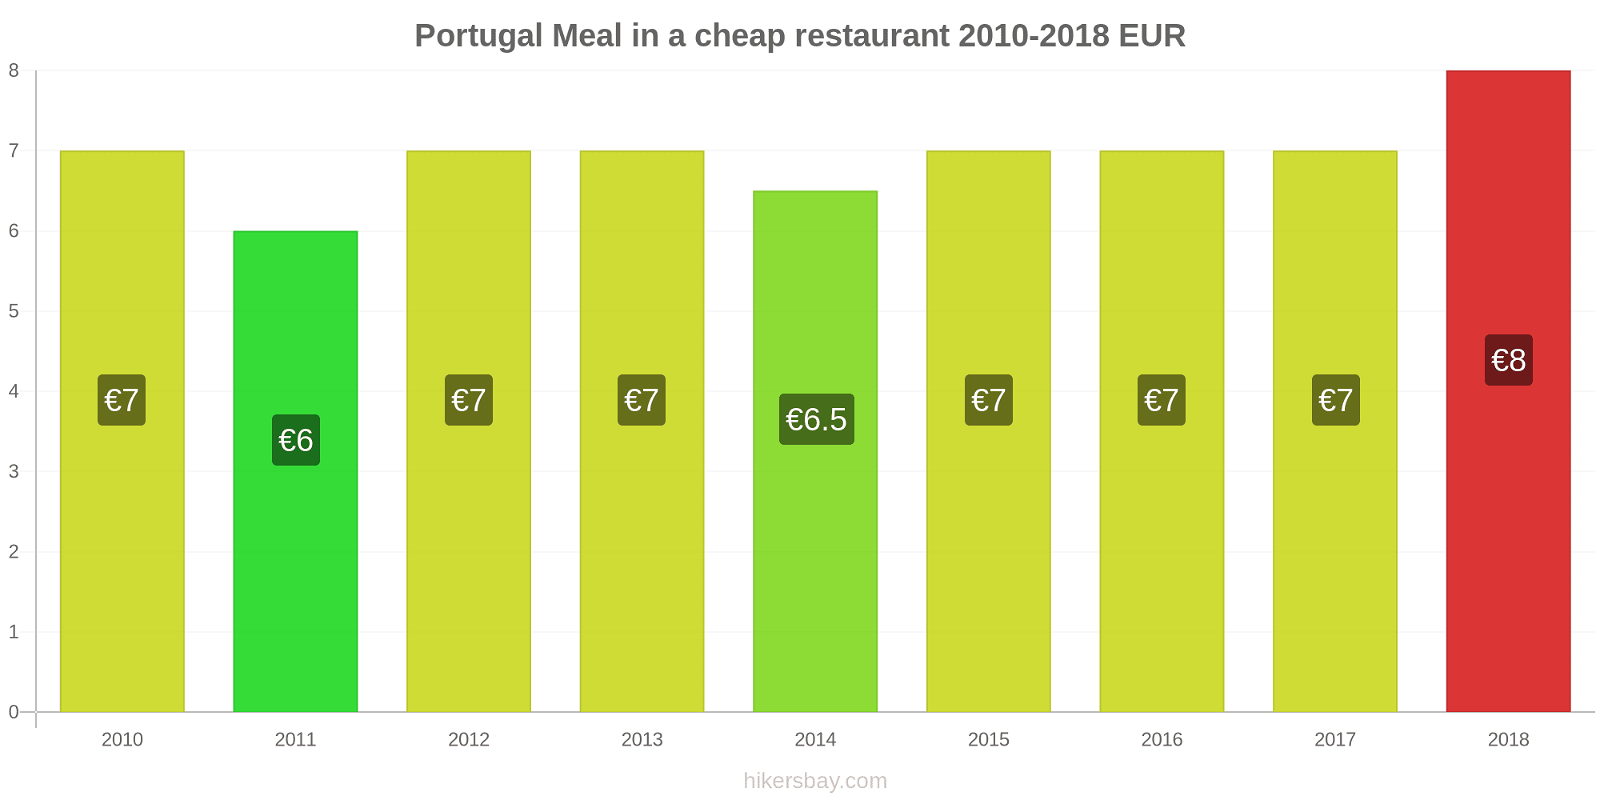 Portugal price changes Meal in a cheap restaurant hikersbay.com